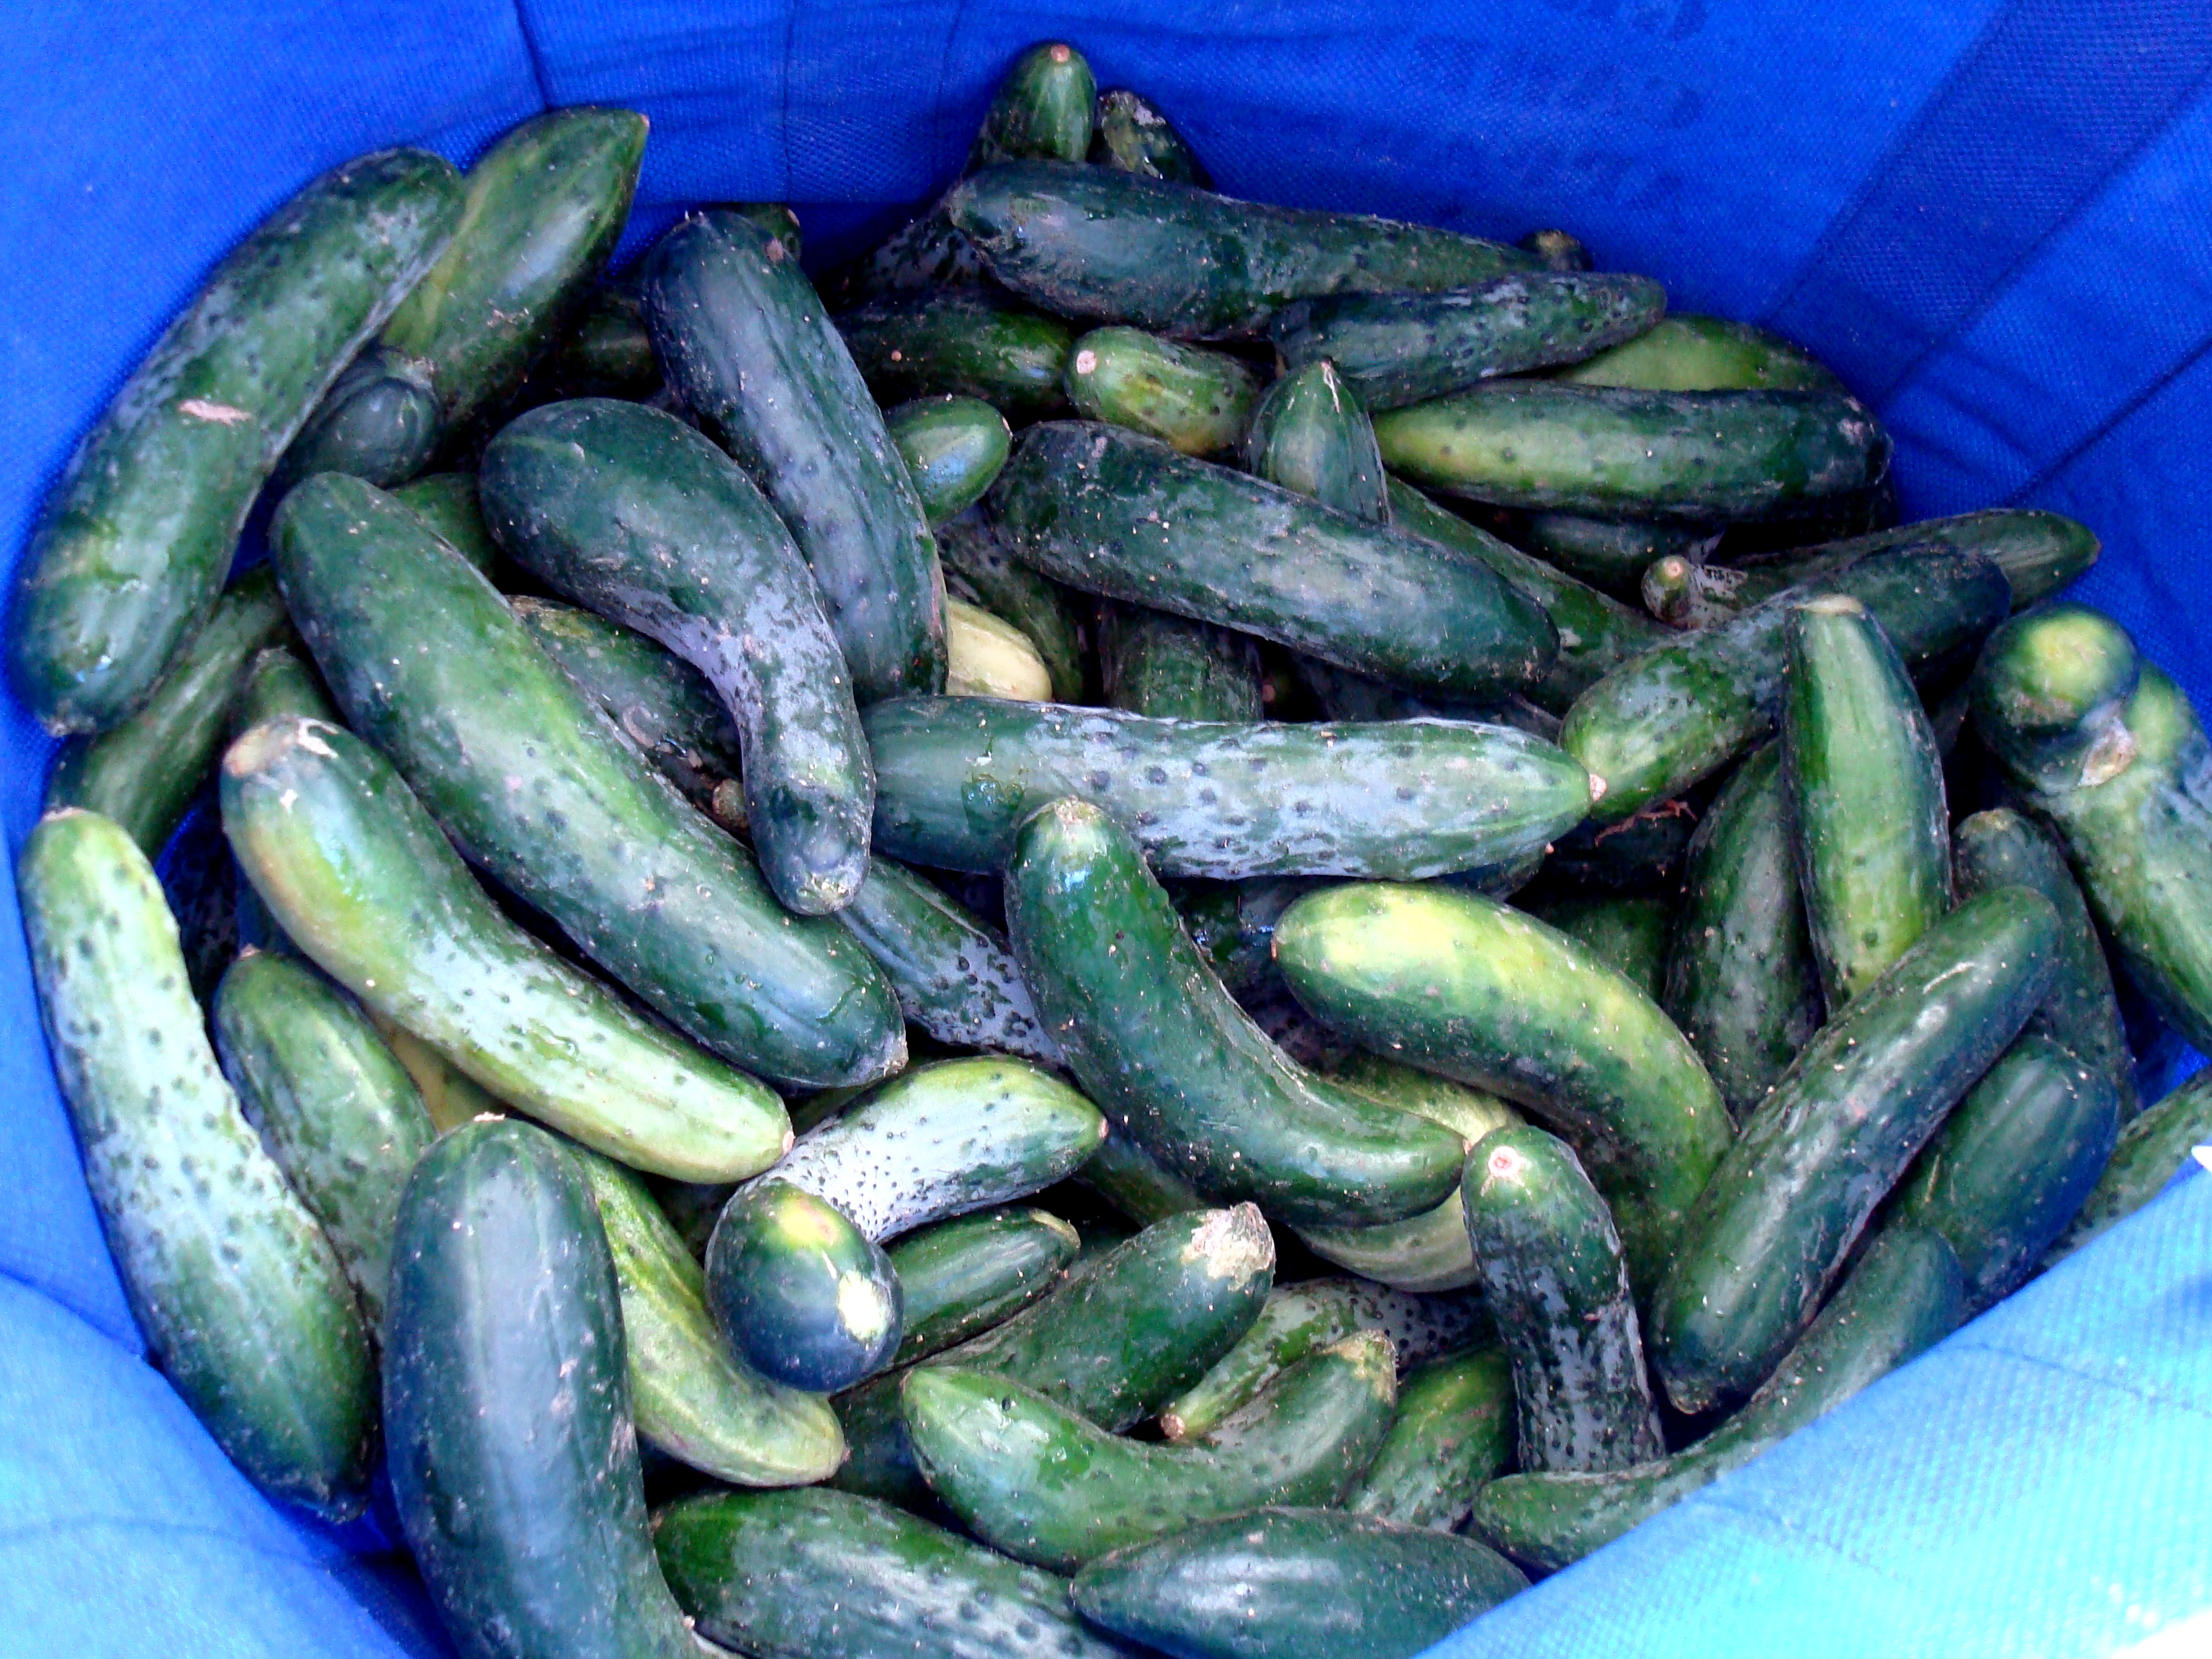 What would a girl really need 20 lbs. of cucumbers for?